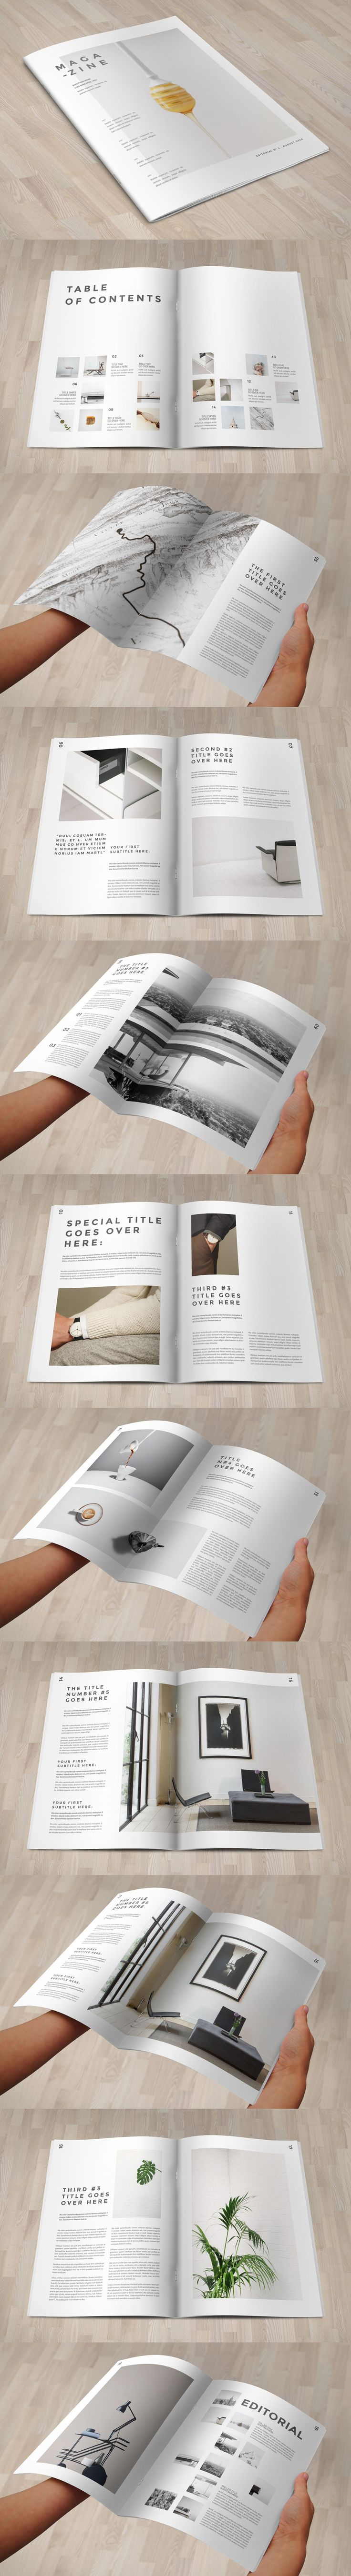 Minimal Cool White Magazine Template INDD - 20 Custom Pages